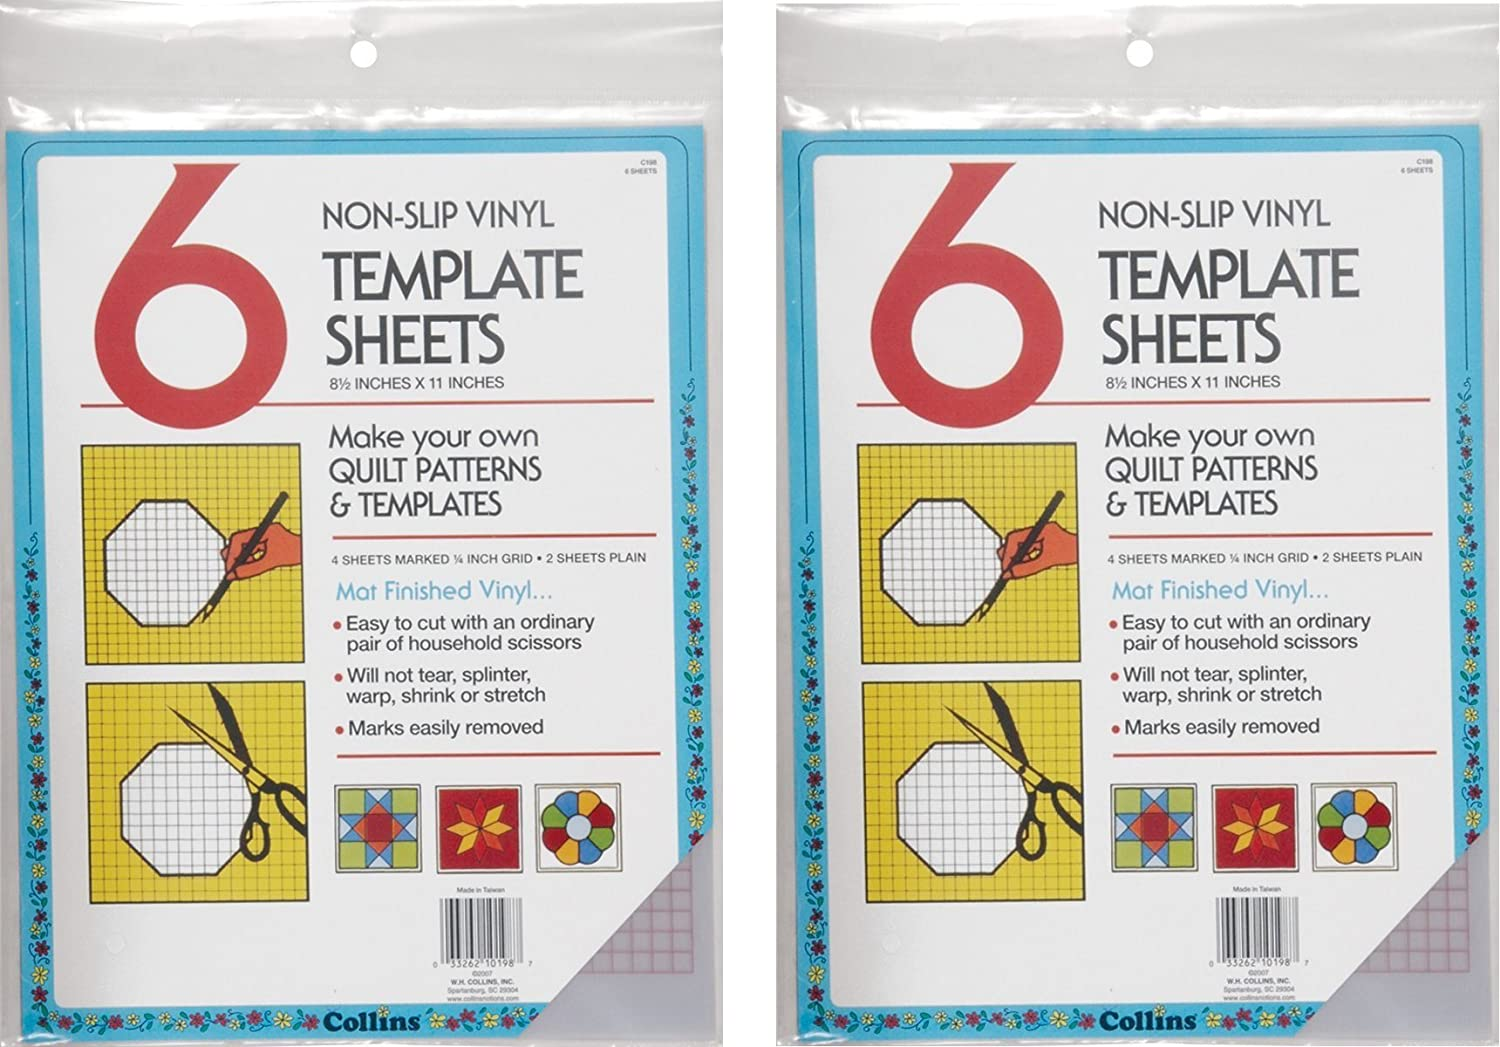 Collins COL198 6 Count Non Slip Vinyl Template Sheet, 8.5 x 11 (2 Pack) 8.5 x 11 (2 Pack)